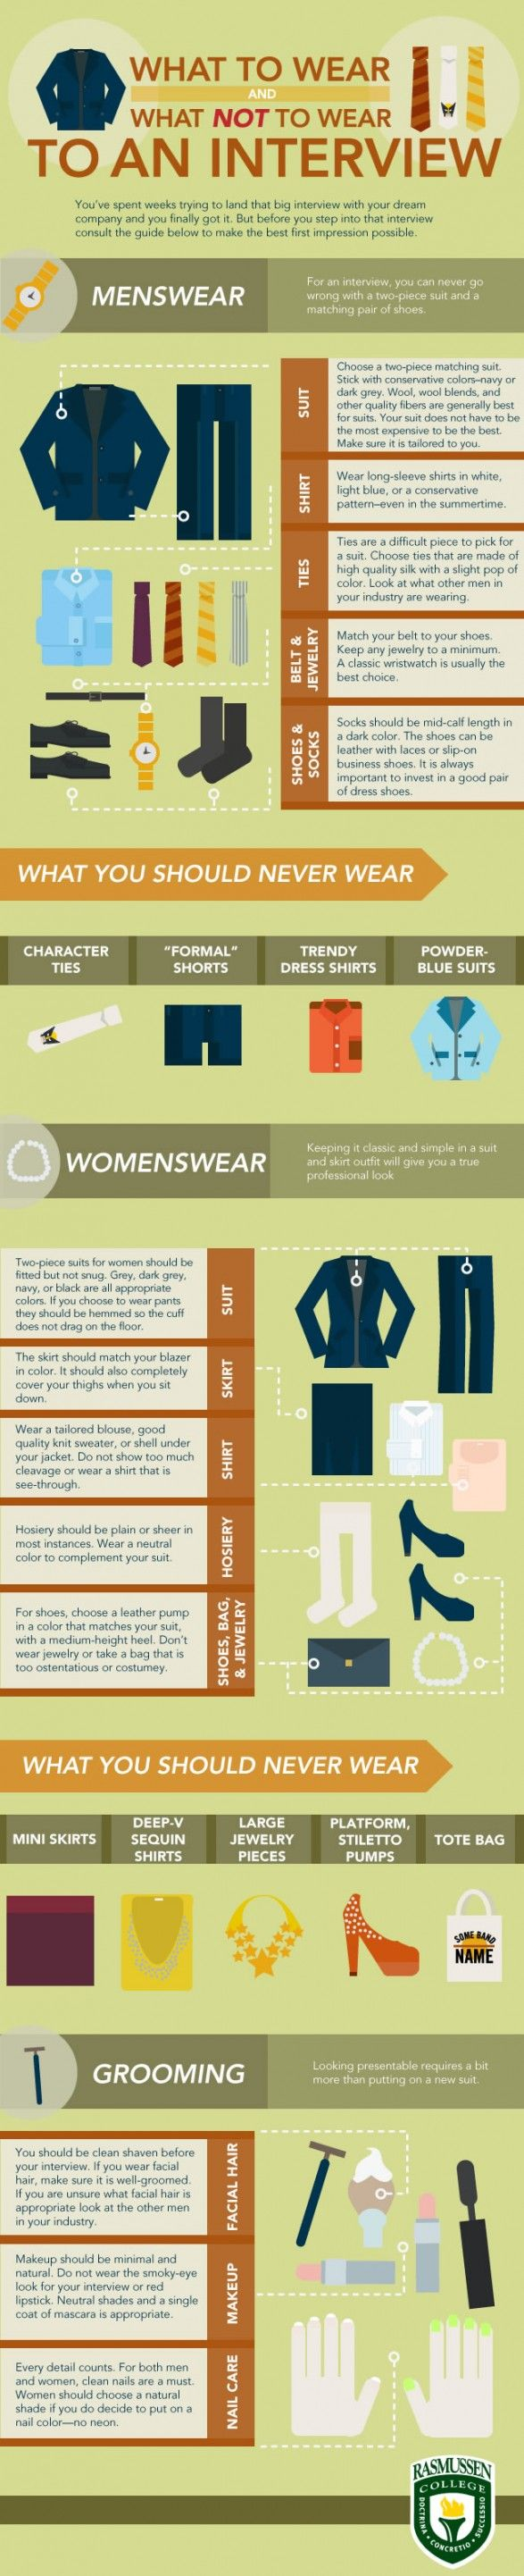 Great What To Wear And What Not To Wear In An Interview! #tips #infographic